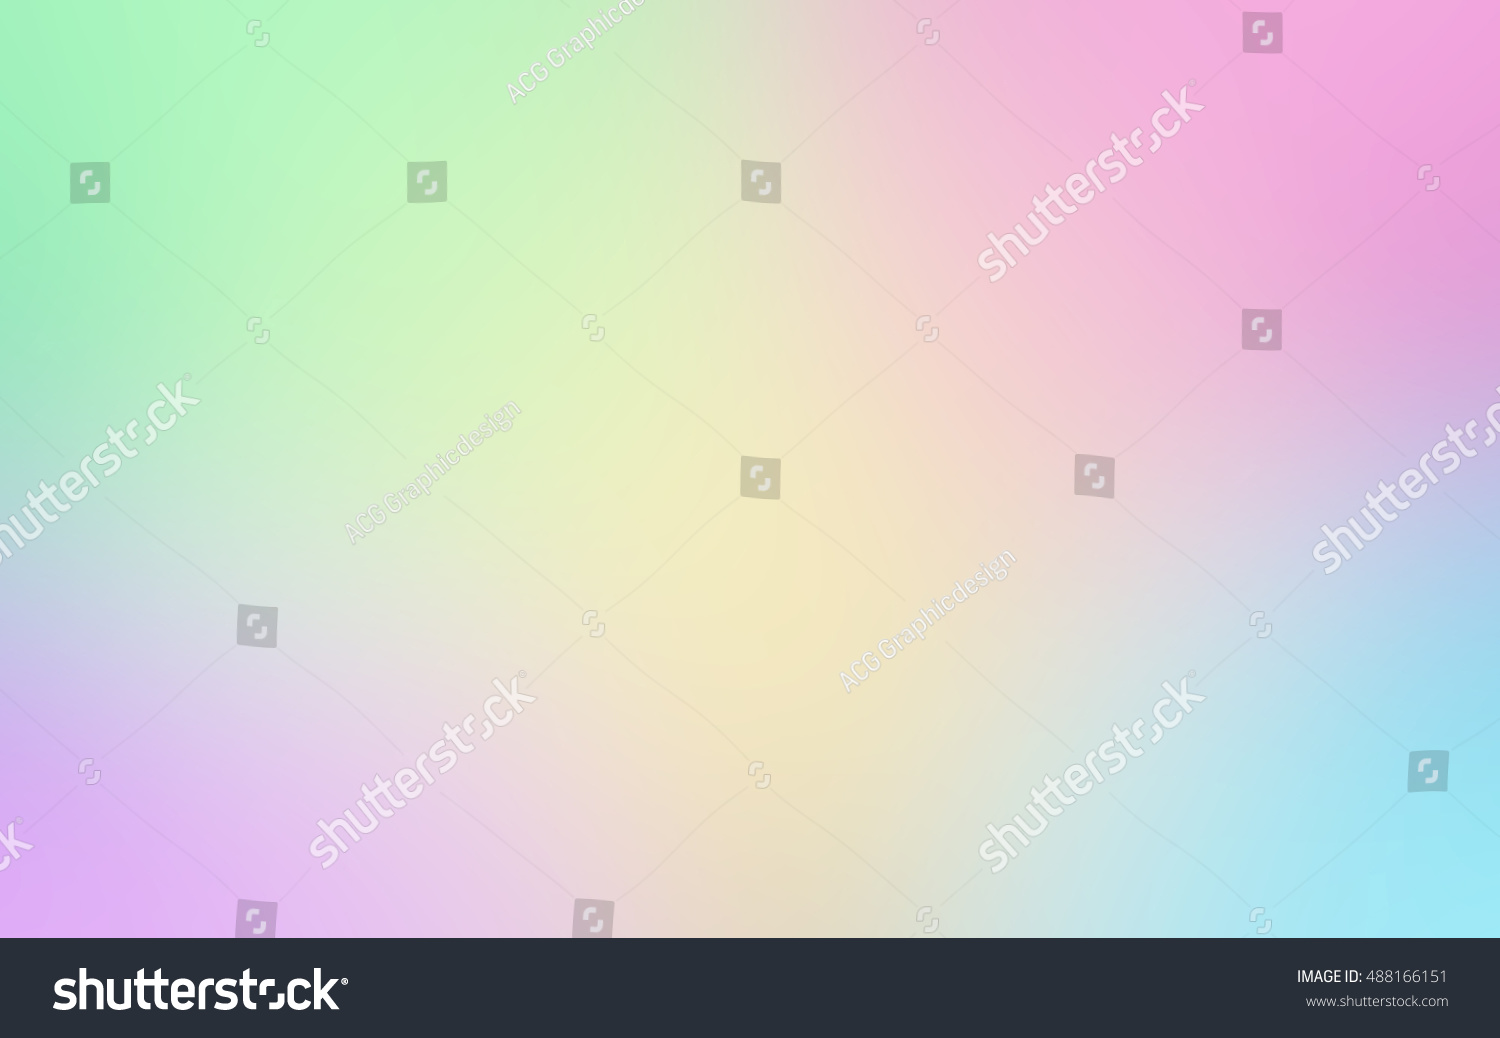 pastel color bright wallpaper abstract wallpapers stock illustration